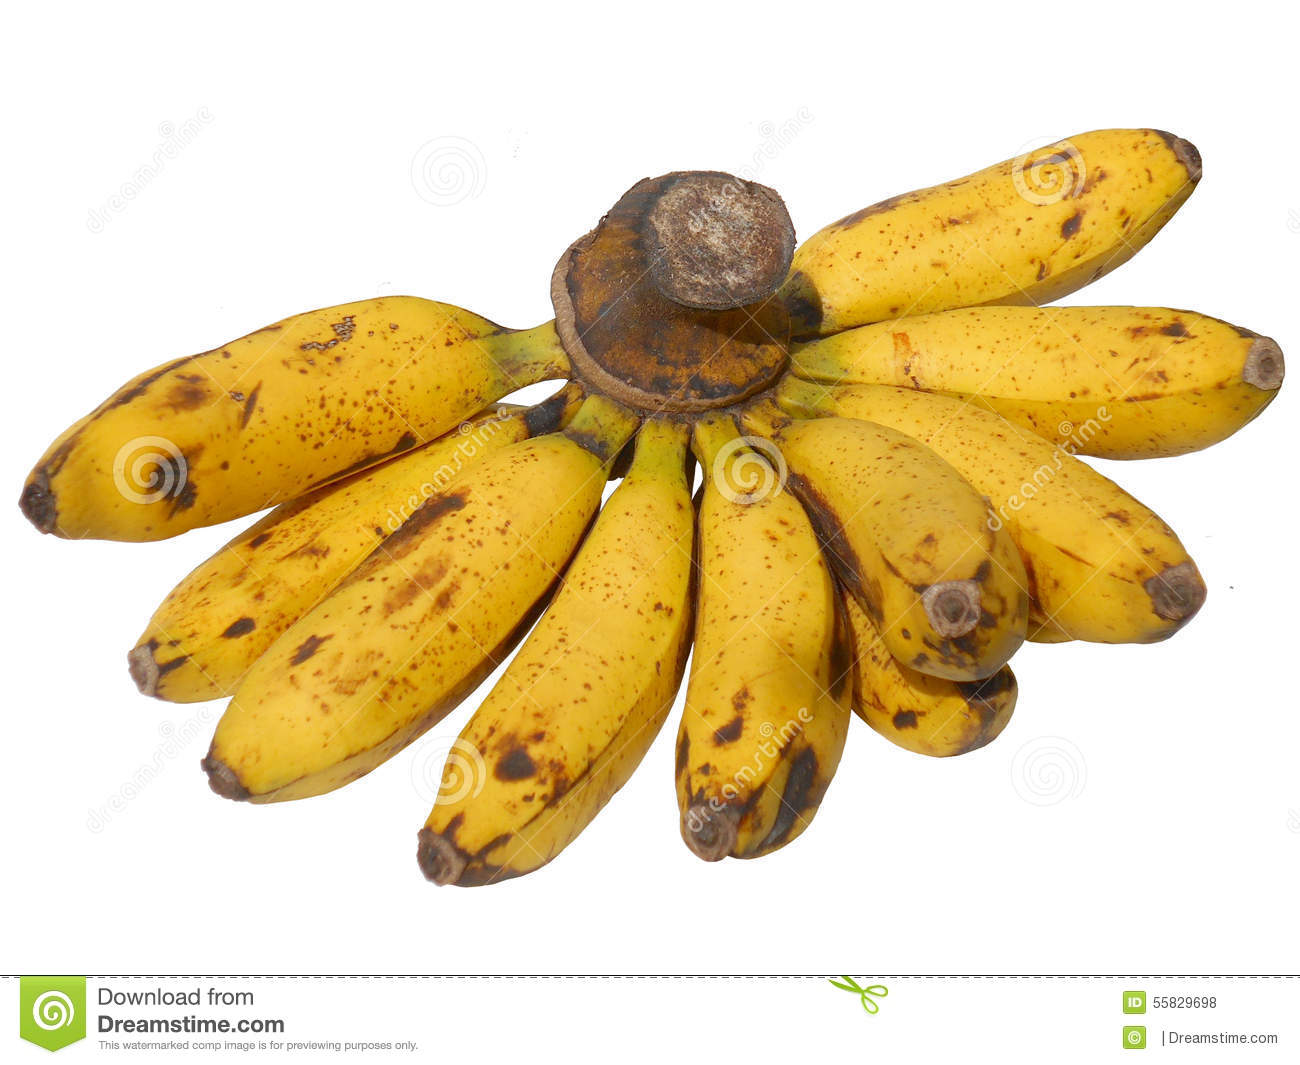 A banana is a fruit or berry. Little known facts about bananas 67